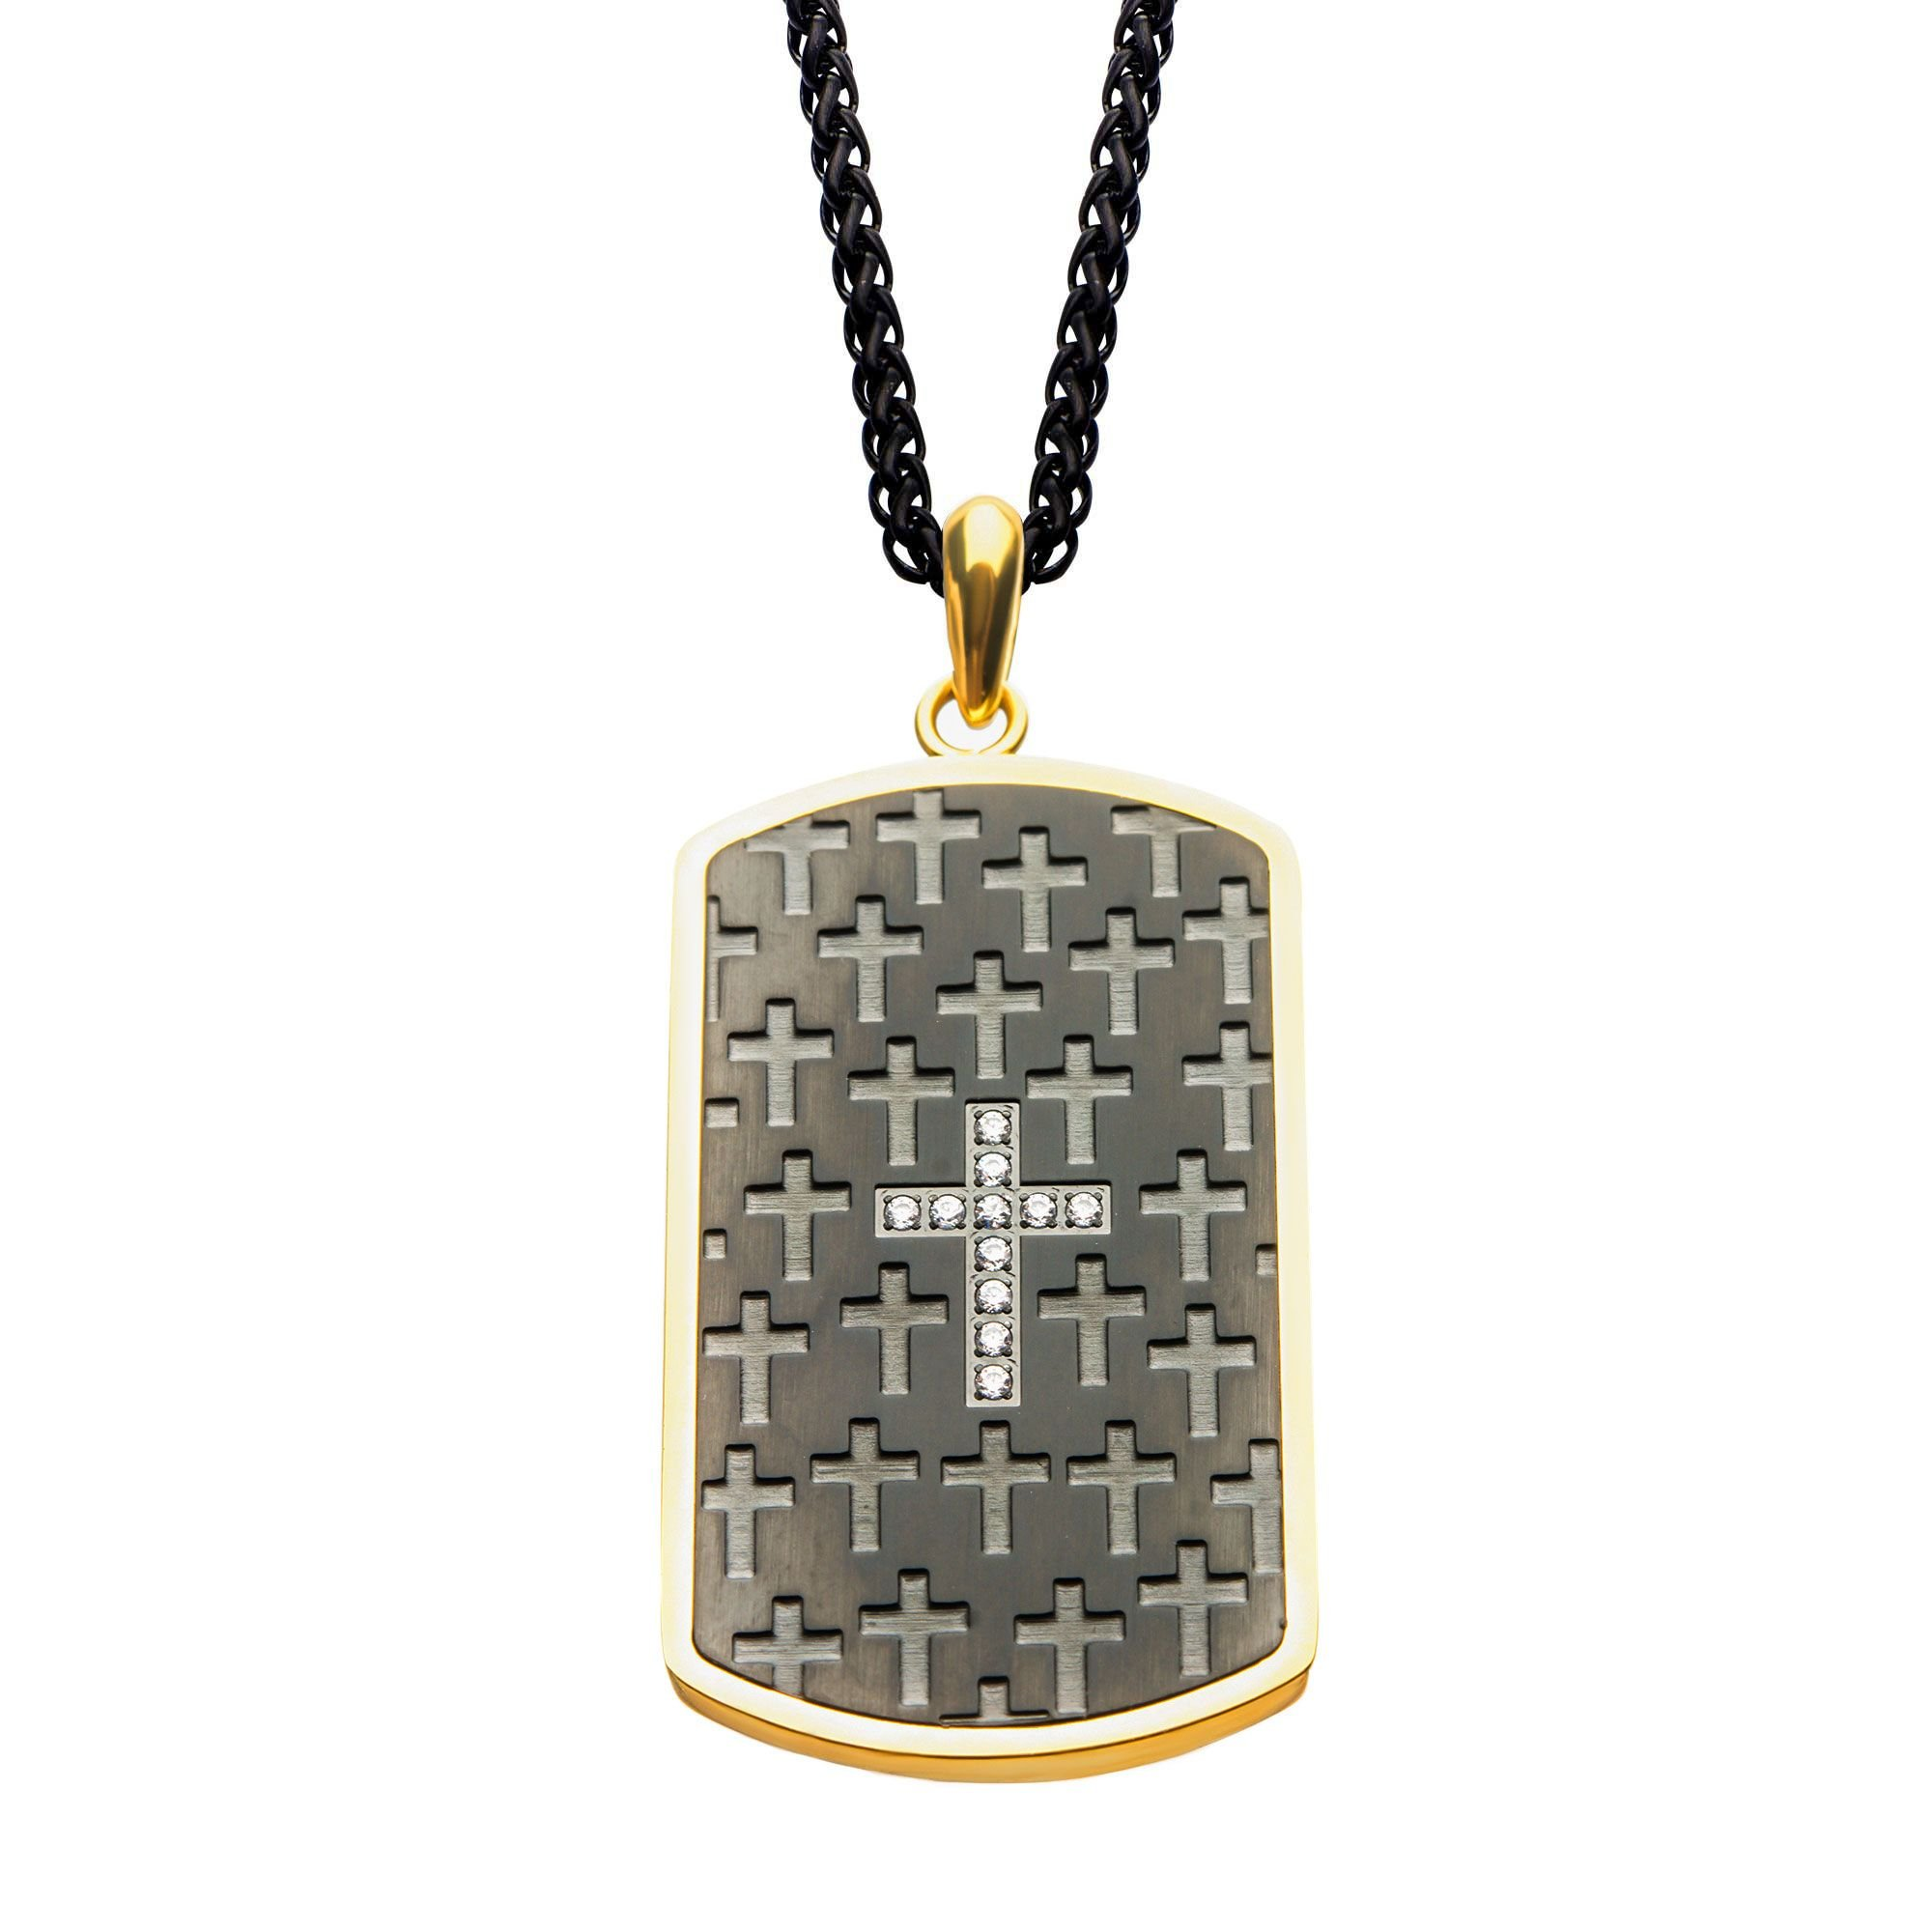 Rare Hills Stainless Steel Black Plated and Gold Plated Dog Tag with Cross Pendant with Chain